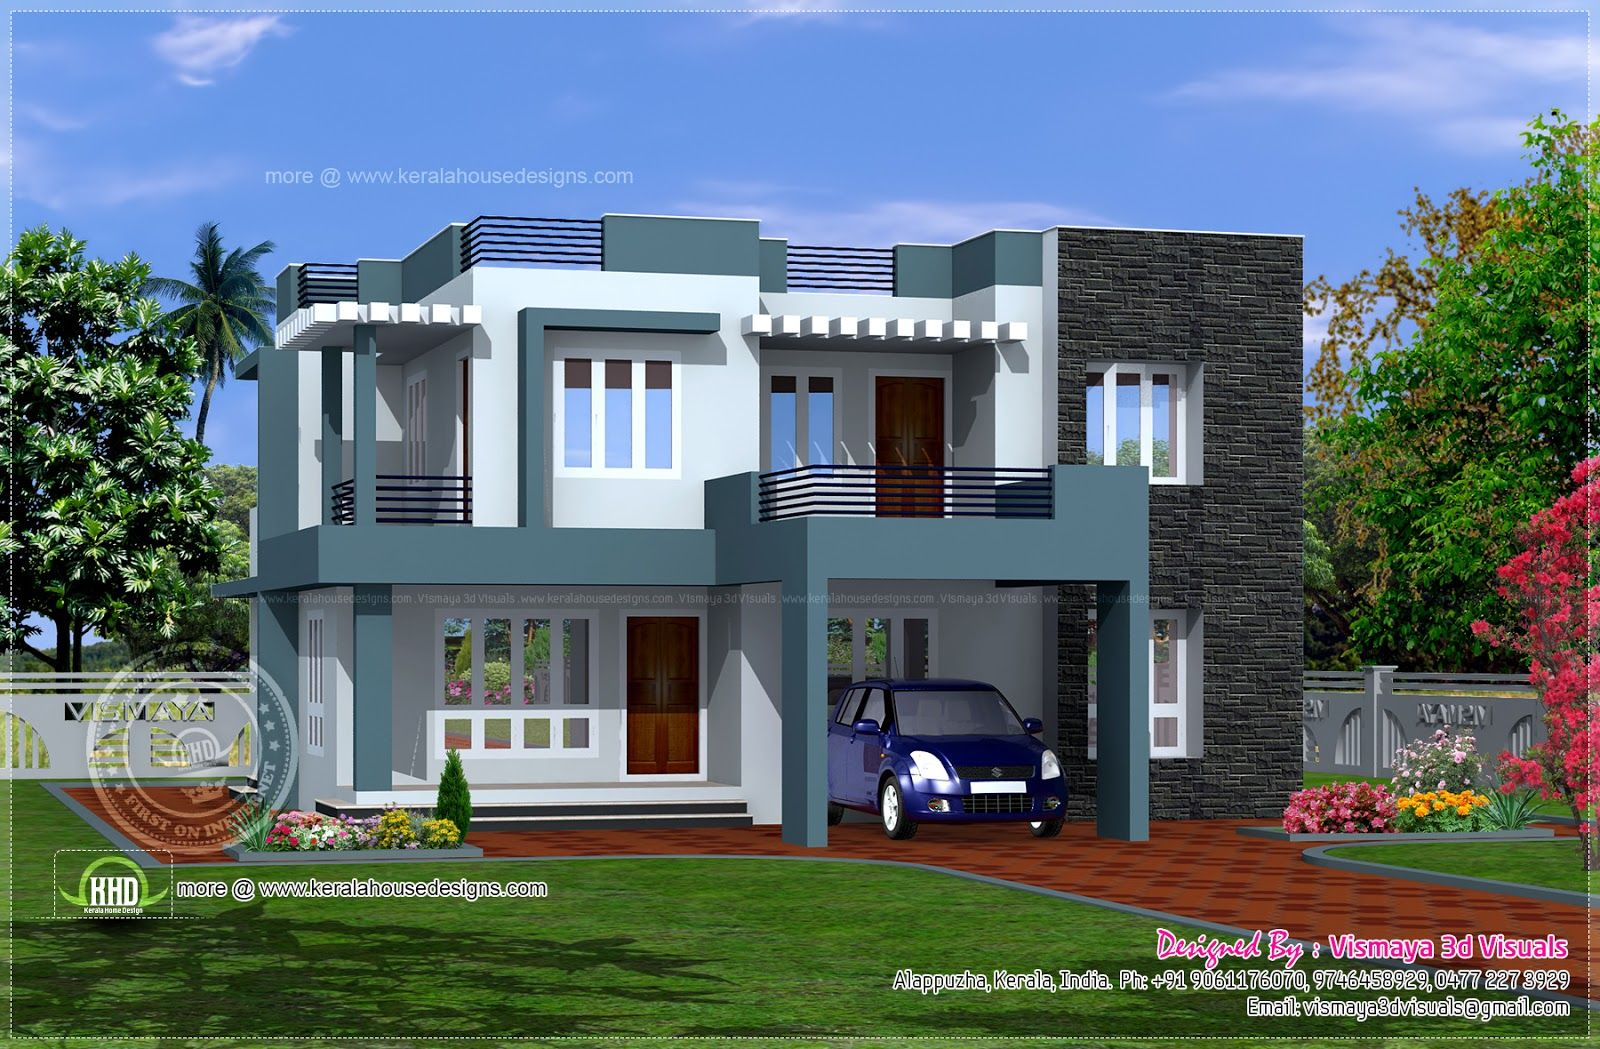 Simple House Plans Designs Simple Square House Plans Philippines House Design Simple House Design Kerala House Design